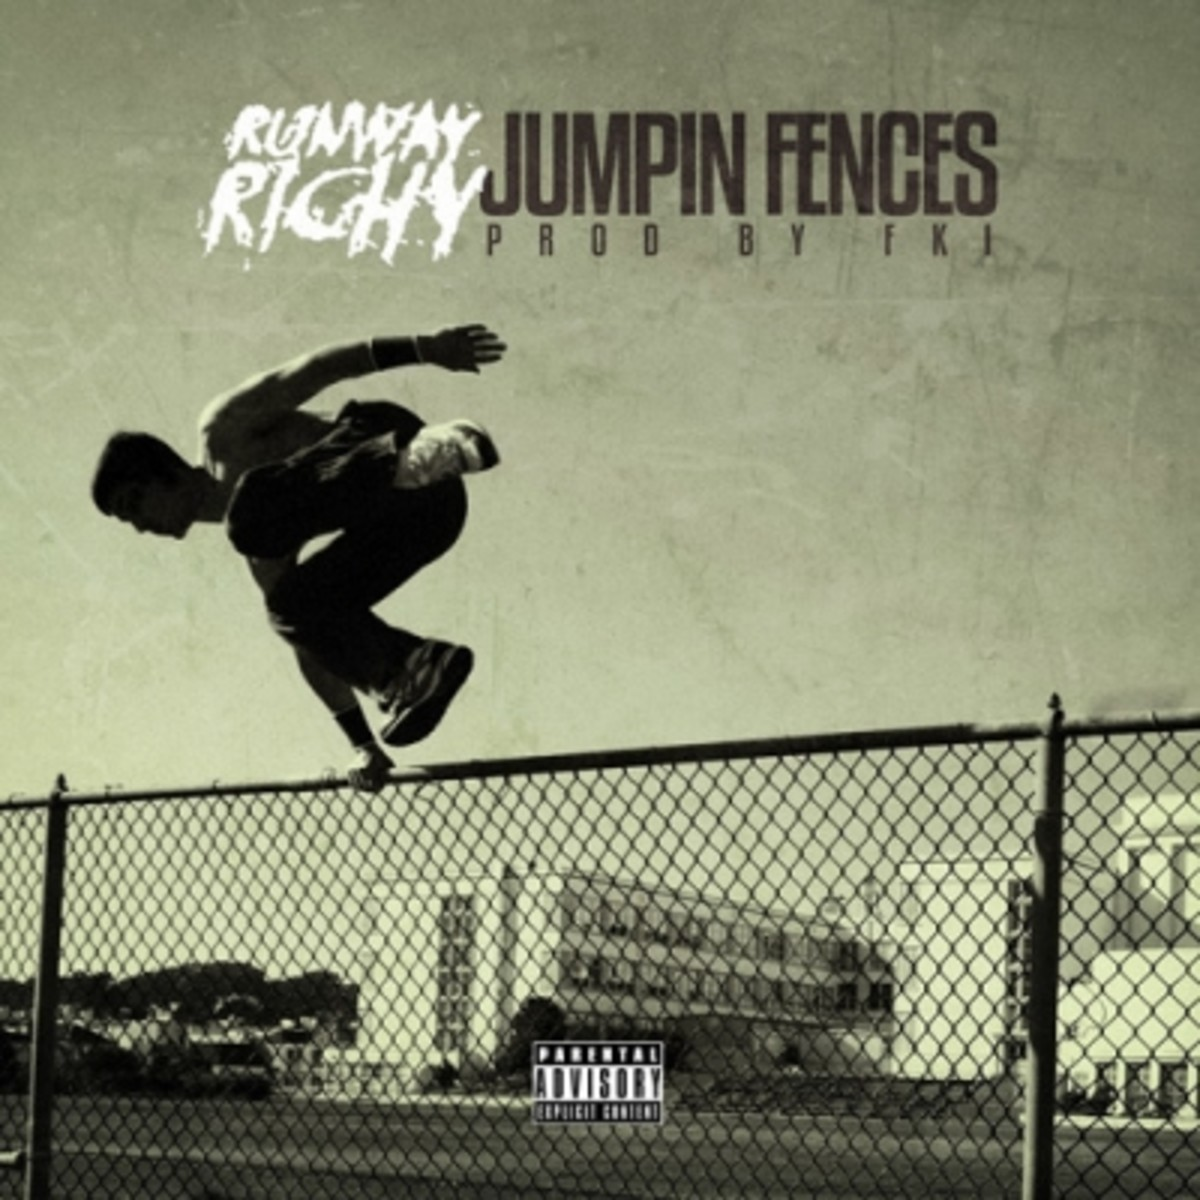 runway-richy-jumpin-fences.jpg